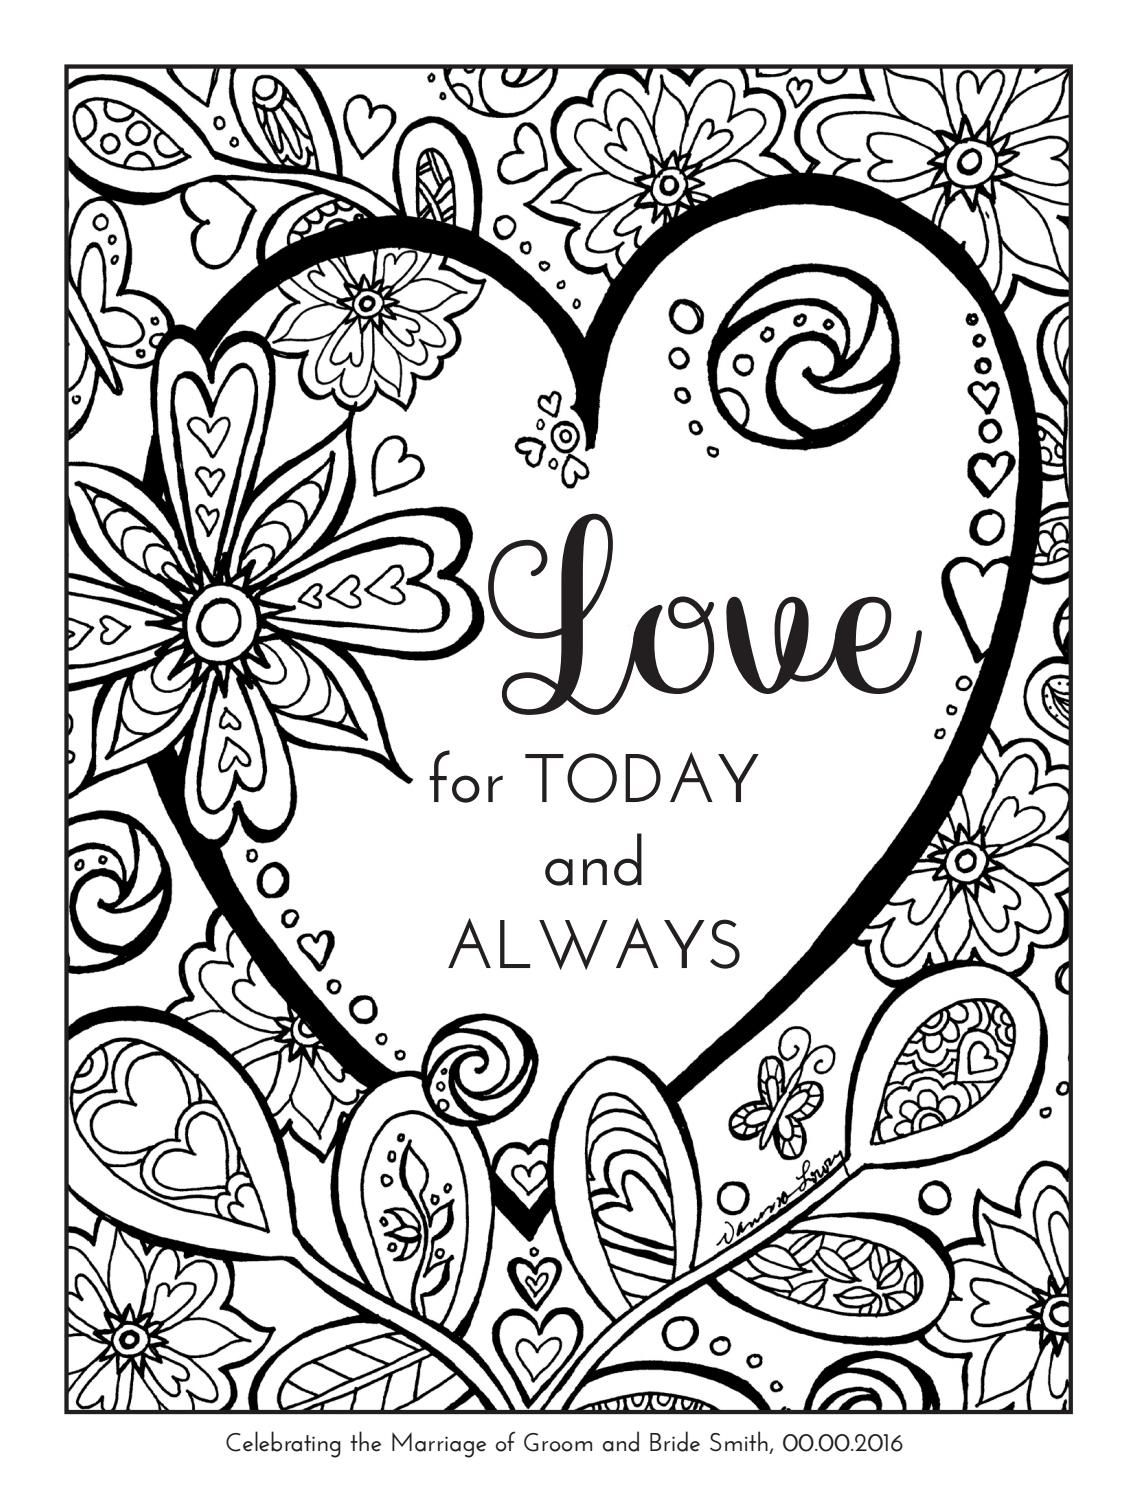 Coloring book wedding example june2016 | Love coloring ...